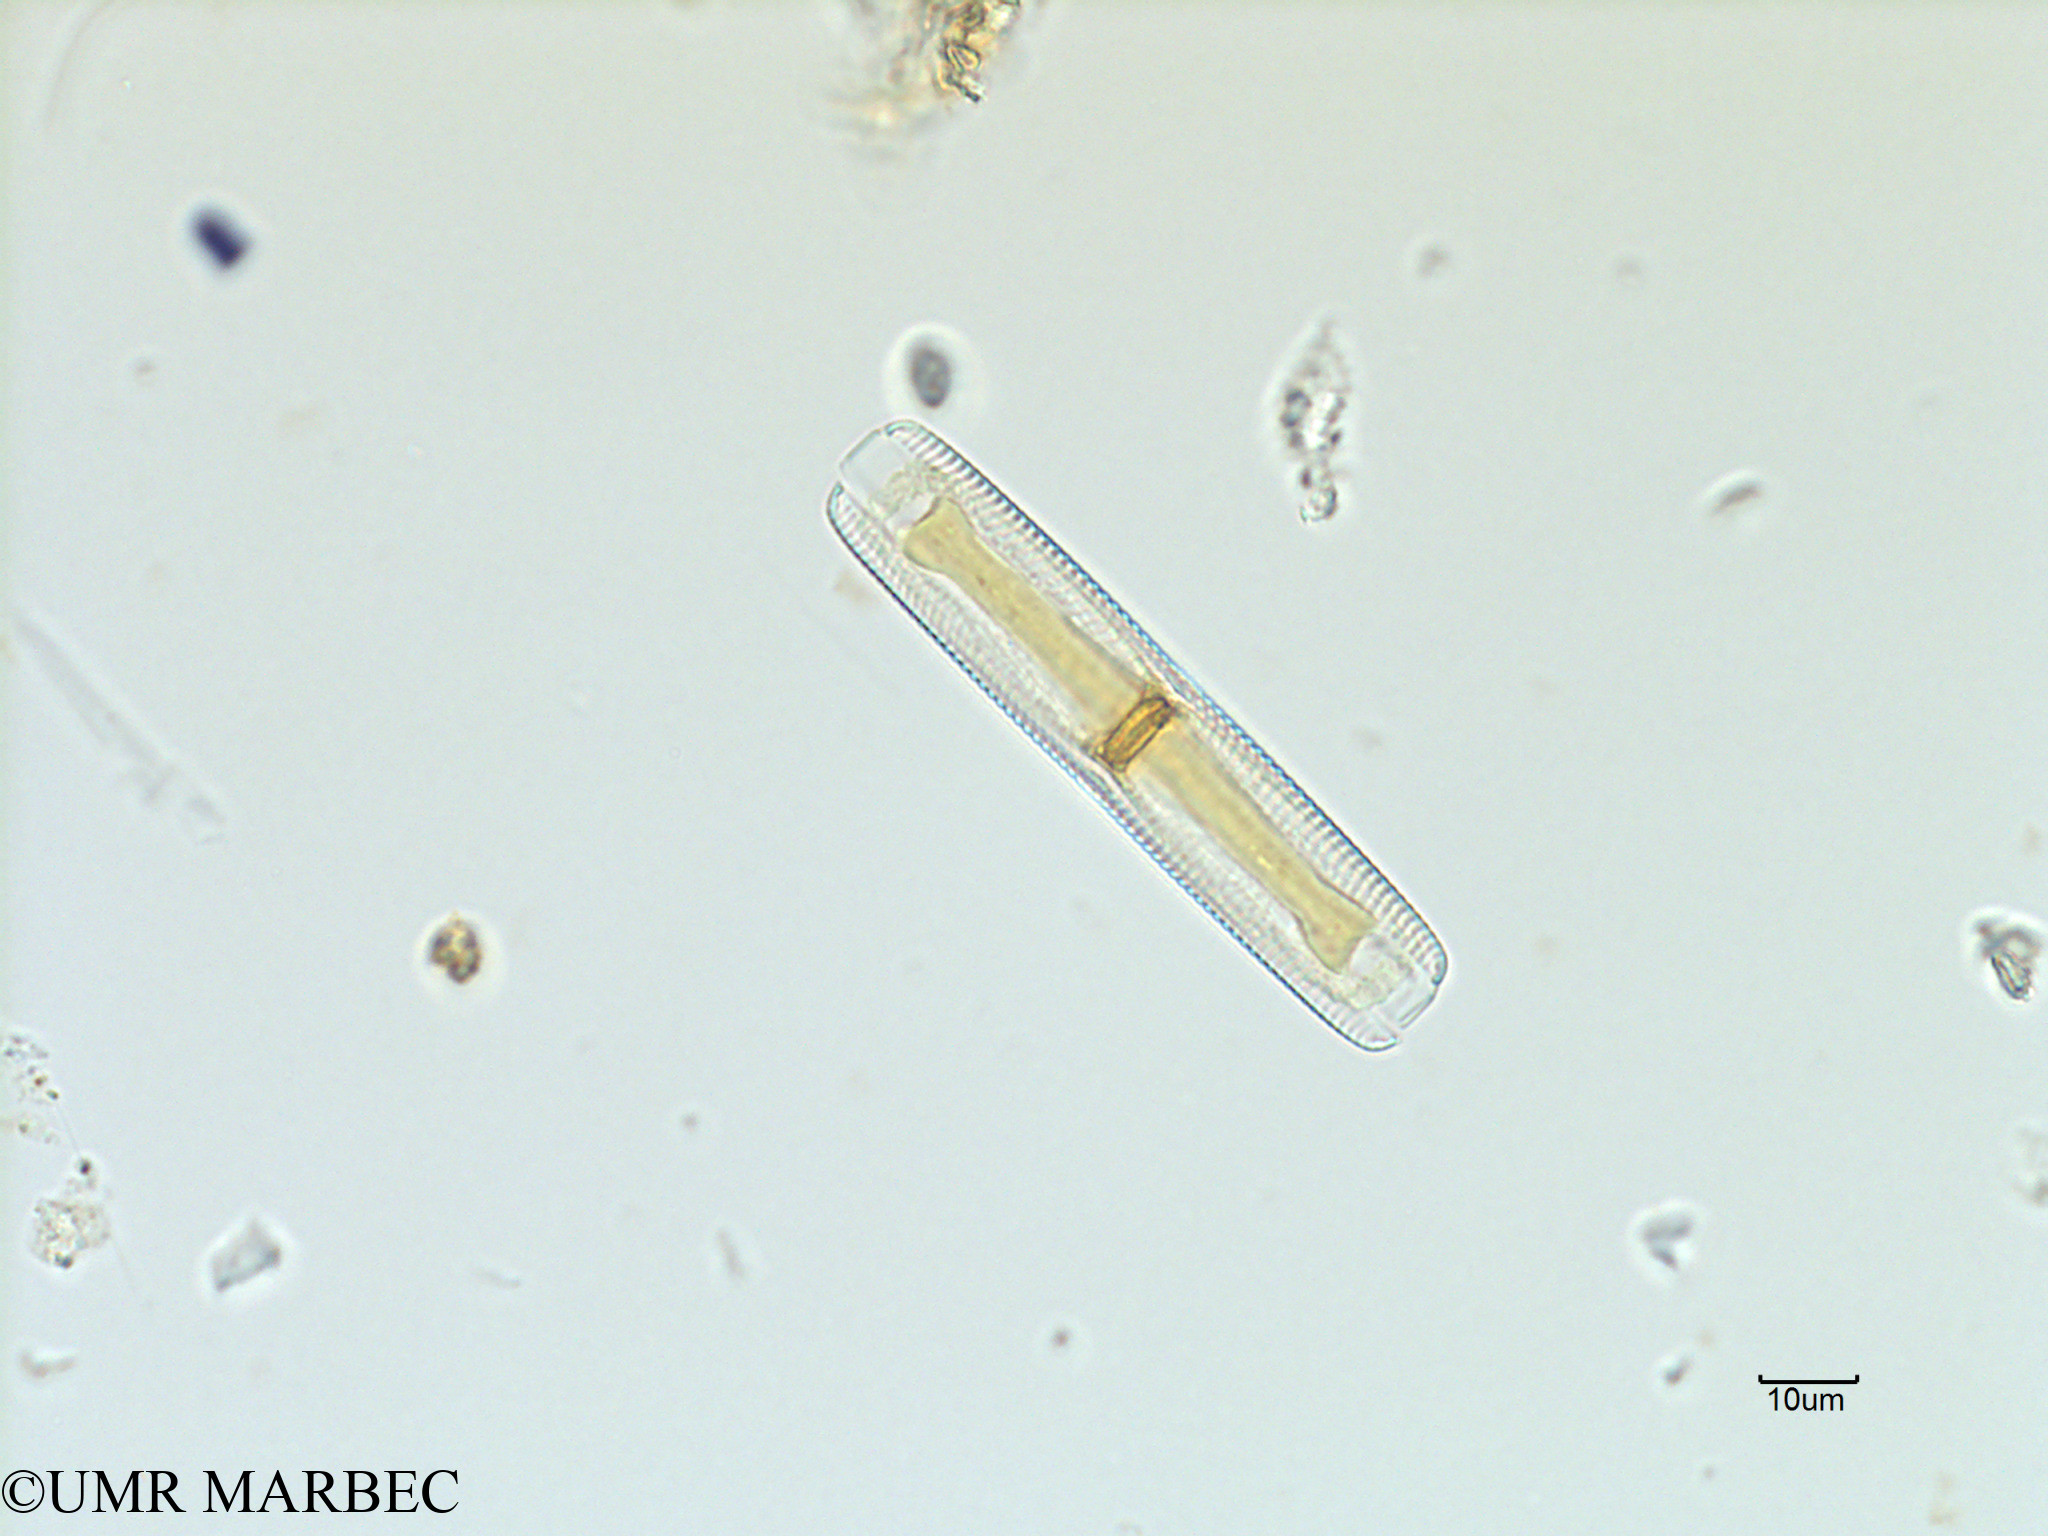 phyto/Scattered_Islands/iles_glorieuses/SIREME November 2015/Navicula sp6 (SIREME-Glorieuses2015-ech6-211116-photo6-2)(copy).jpg